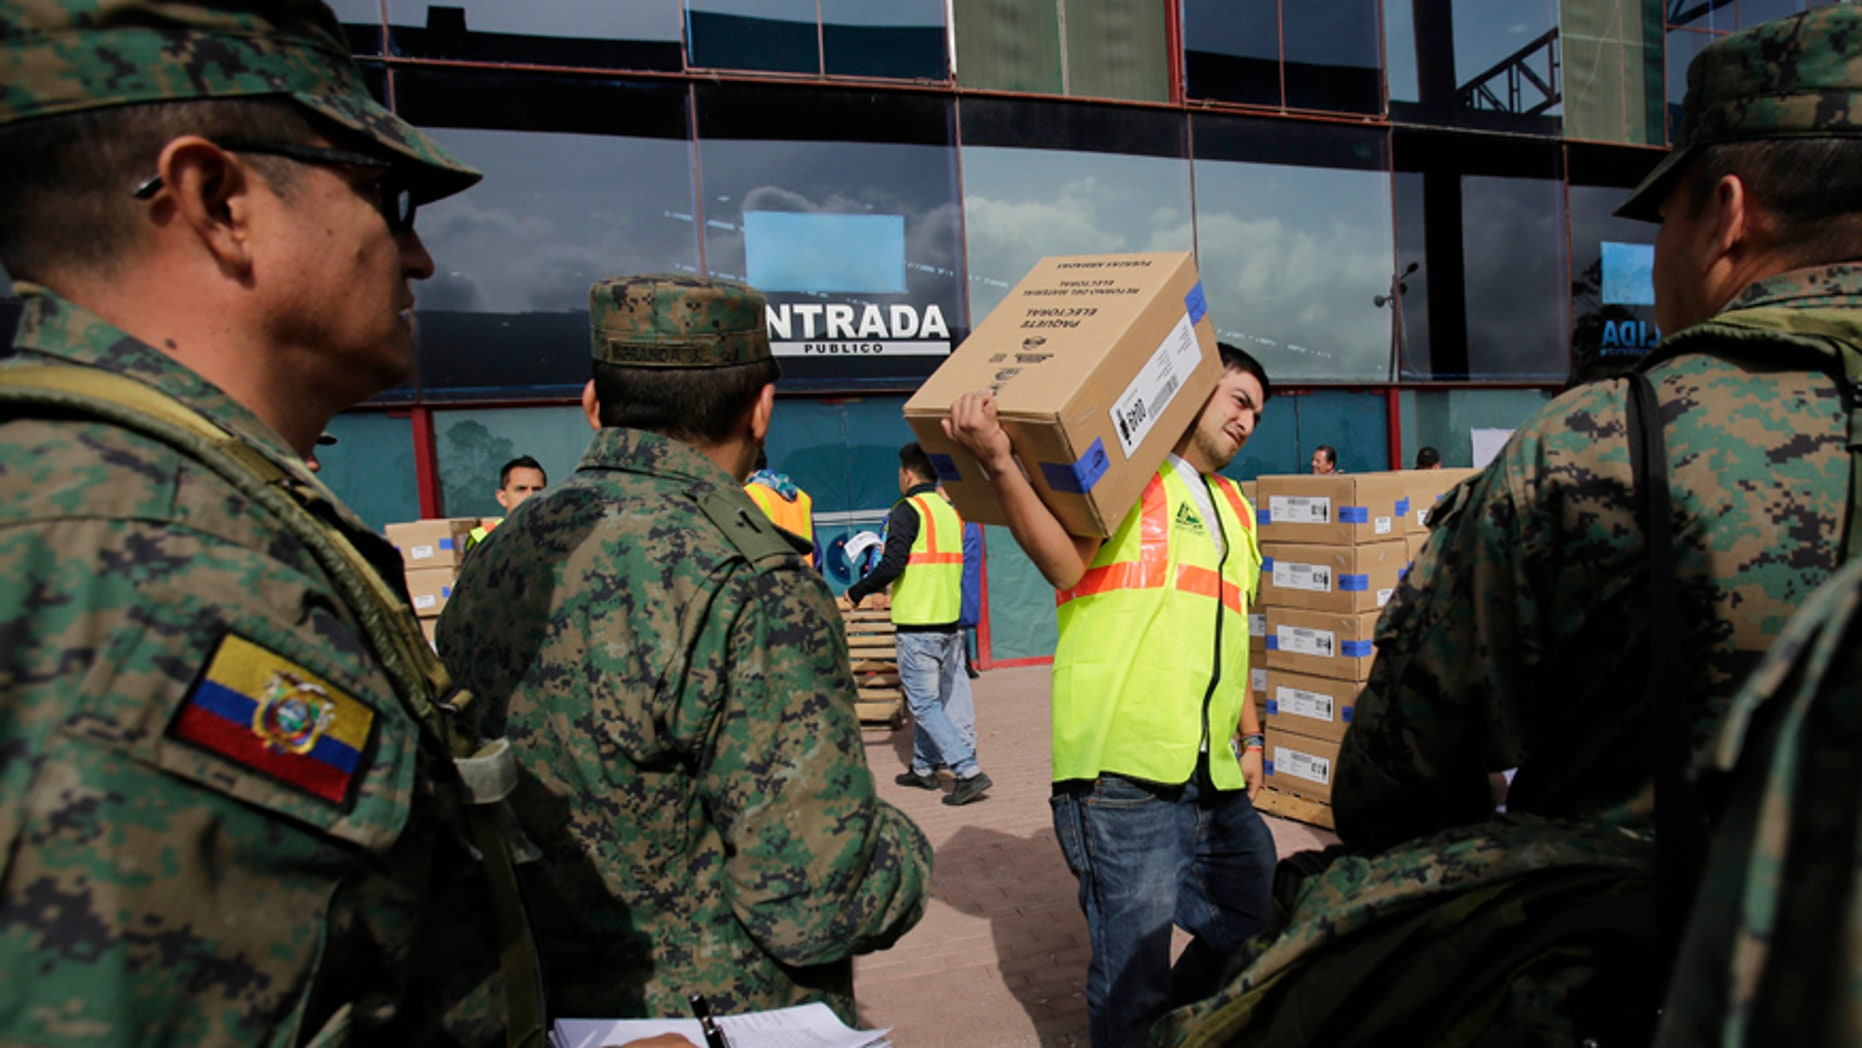 An Ecuador election official carries an electoral kit to be delivered to different polling places by the army, in Quito, Ecuador, Saturday, Feb. 18, 2017. Ecuadoreans will elect a new president, vice-president and National Assembly alongside a referendum on tax havens tomorrow. (AP Photo/Dolores Ochoa)